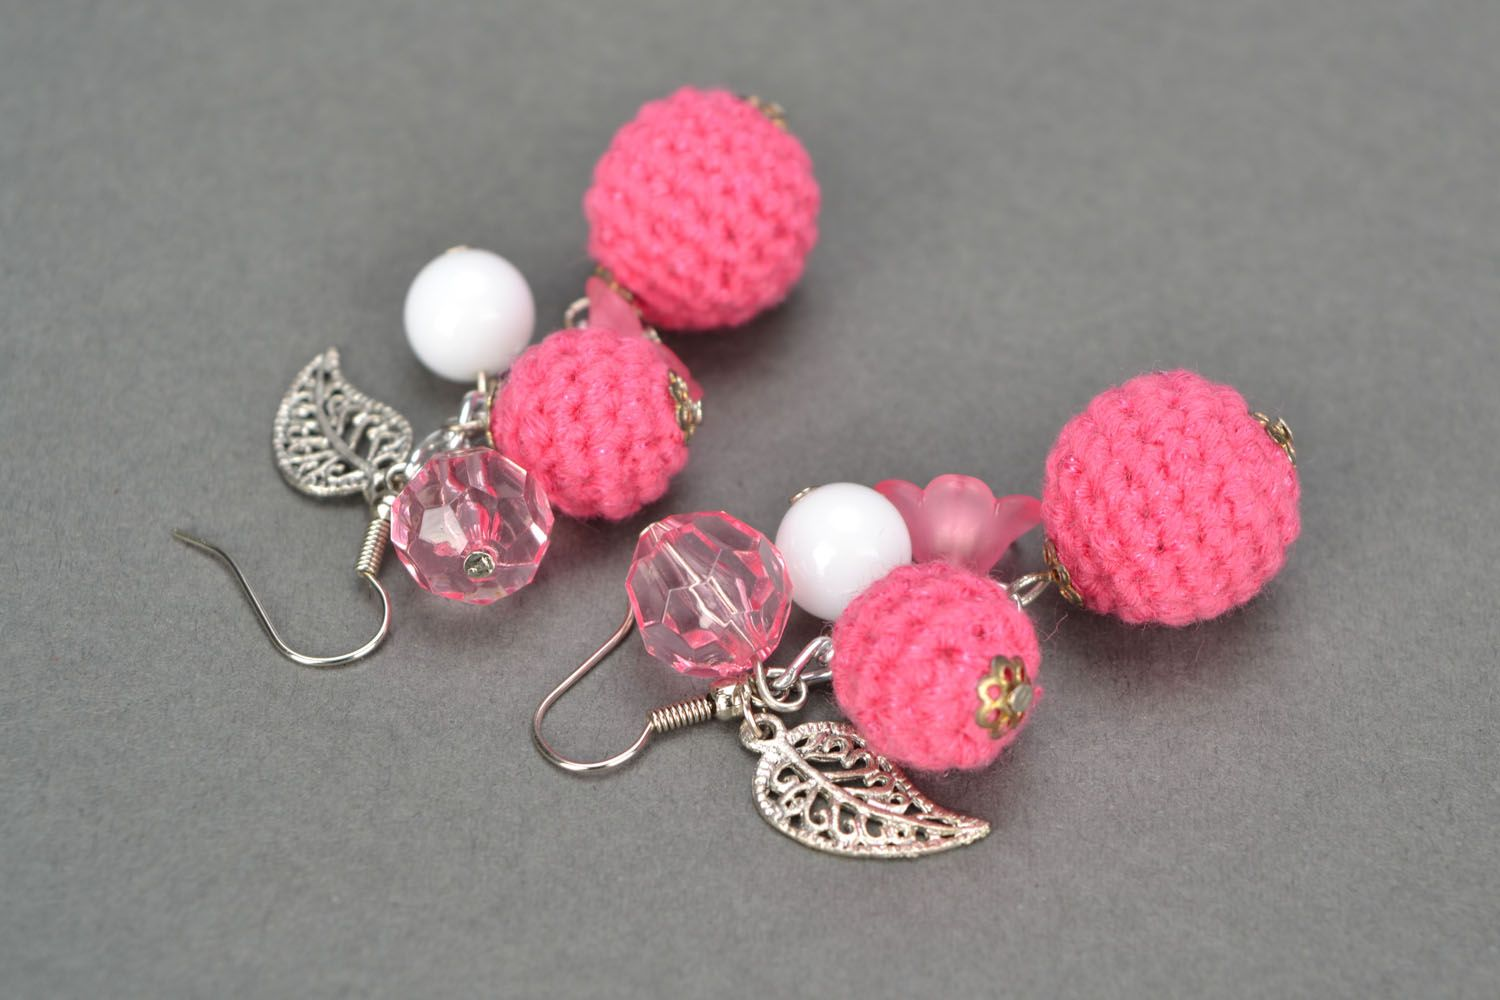 Lace earrings with charms Pink Hope photo 4